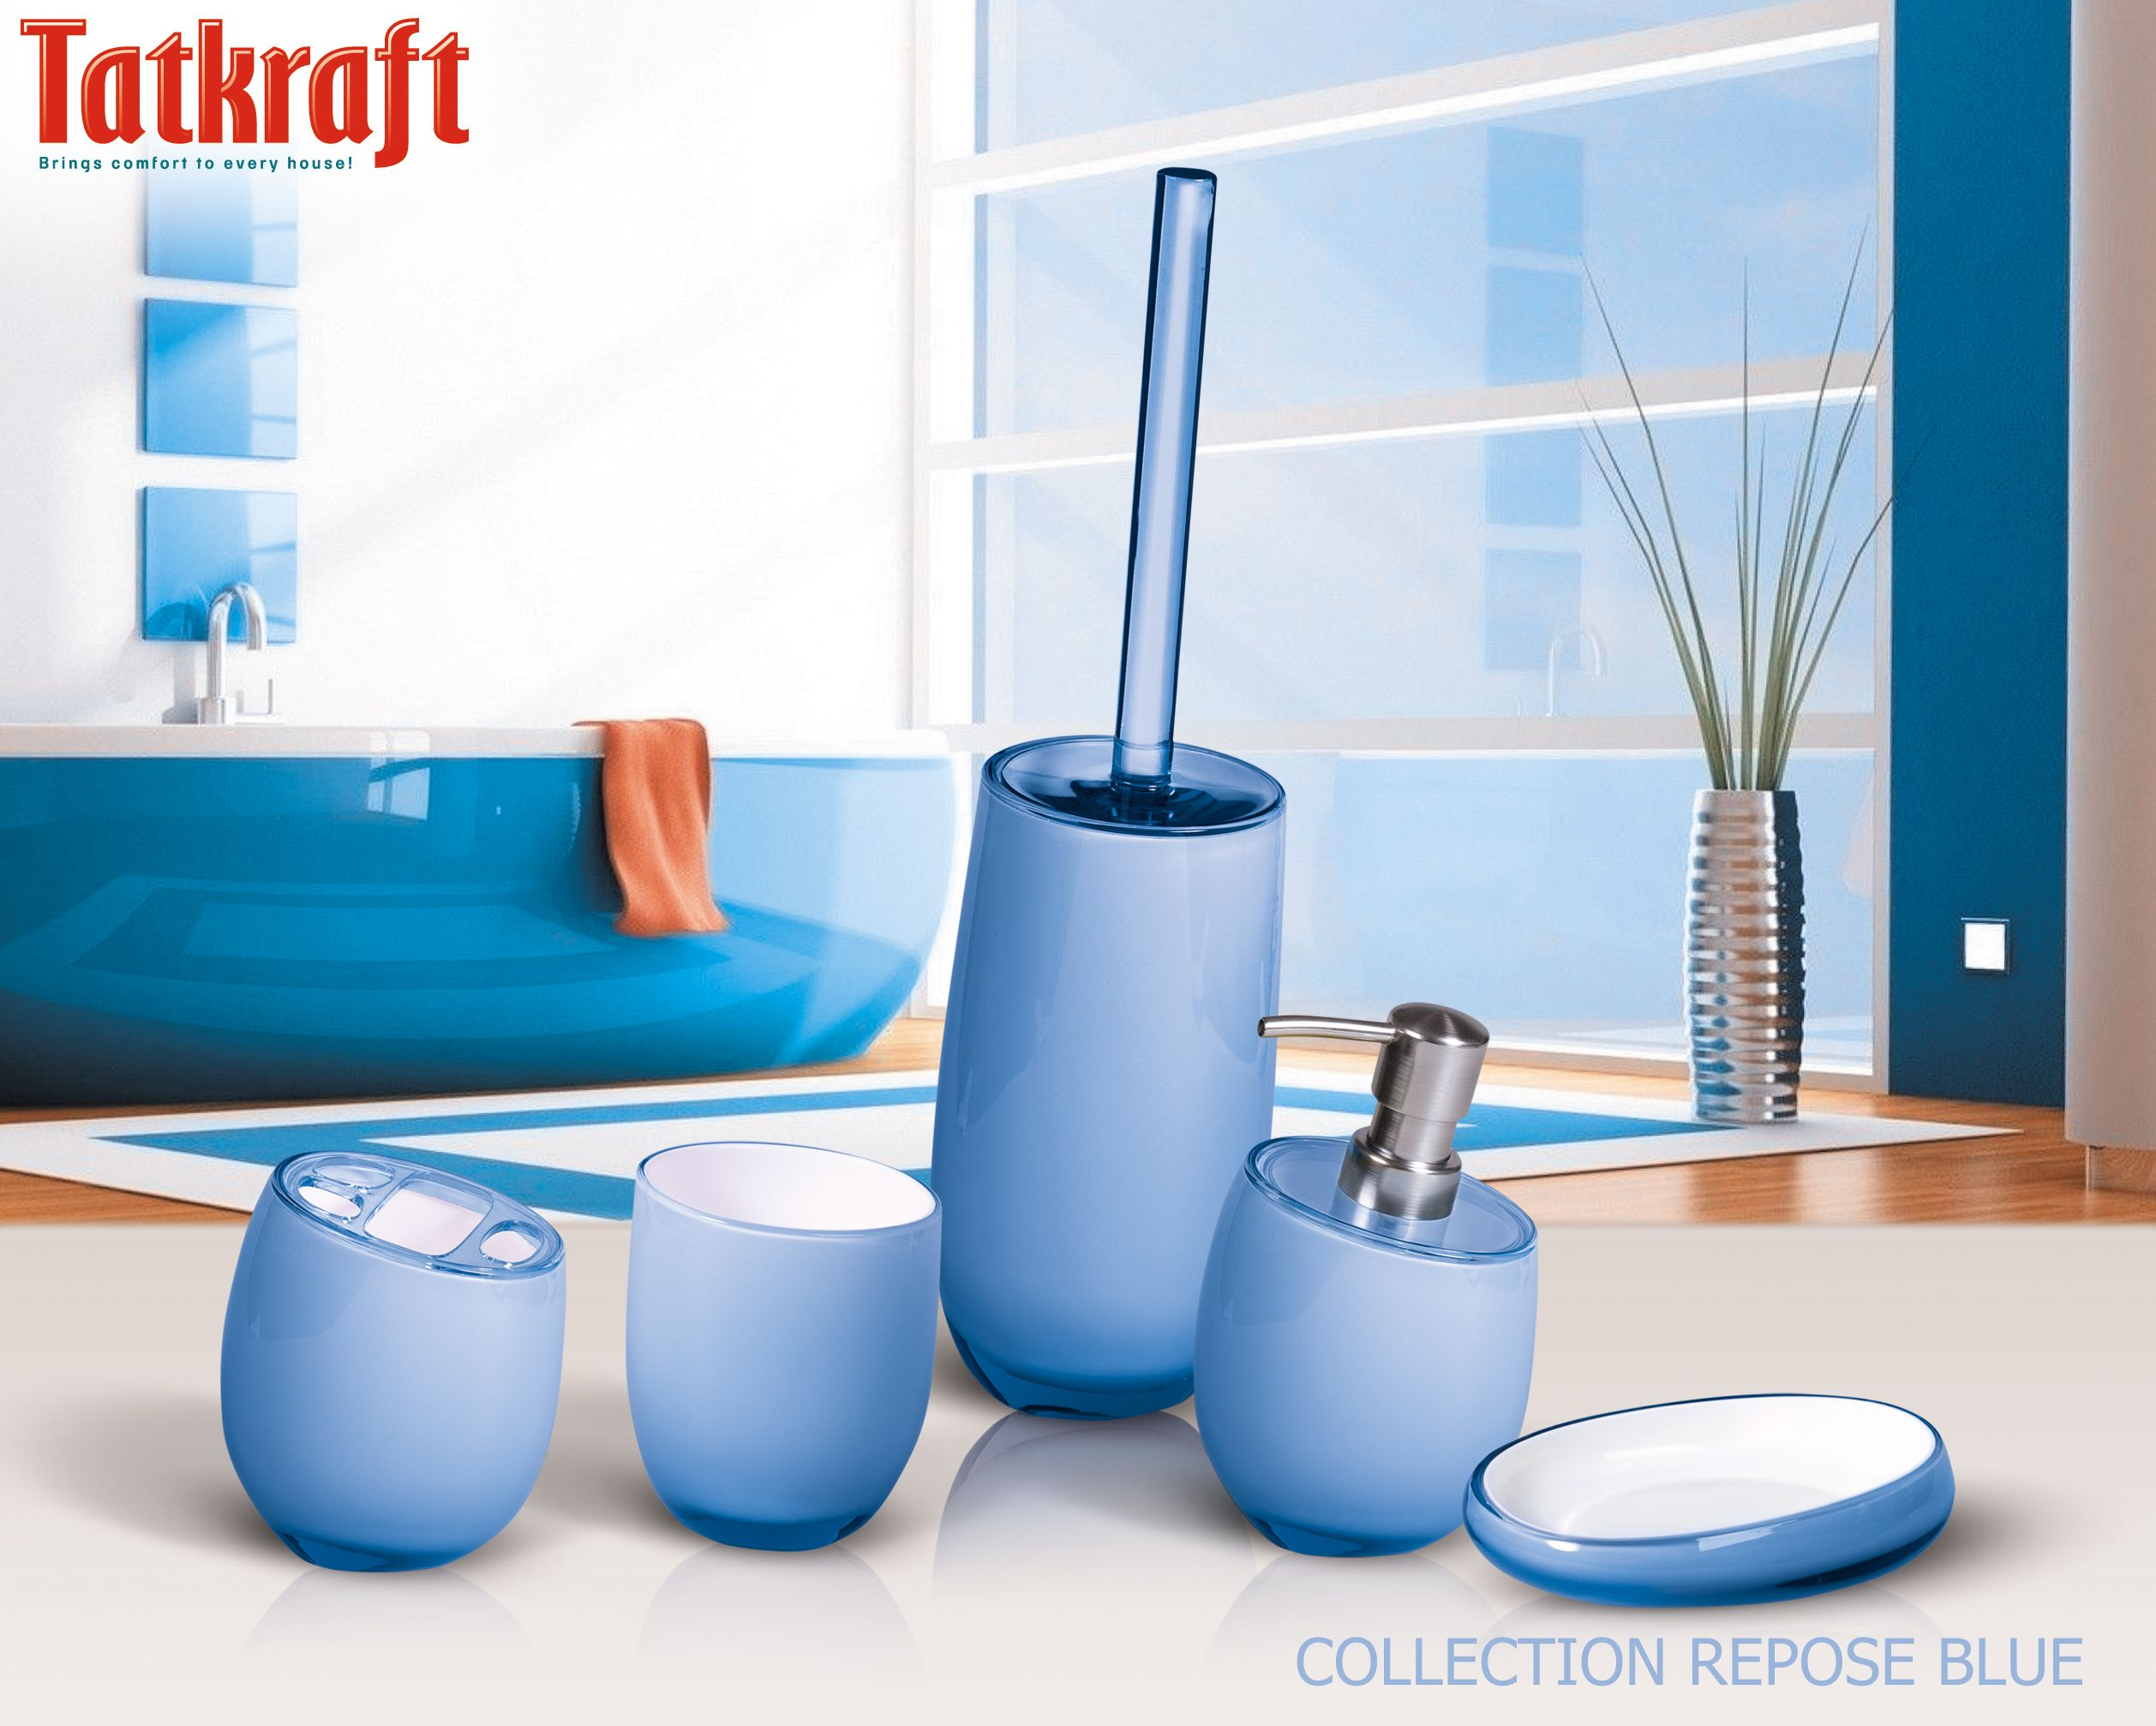 Collection repose blue from tatkraft amazon uk acrylic for Bathroom accessories acrylic